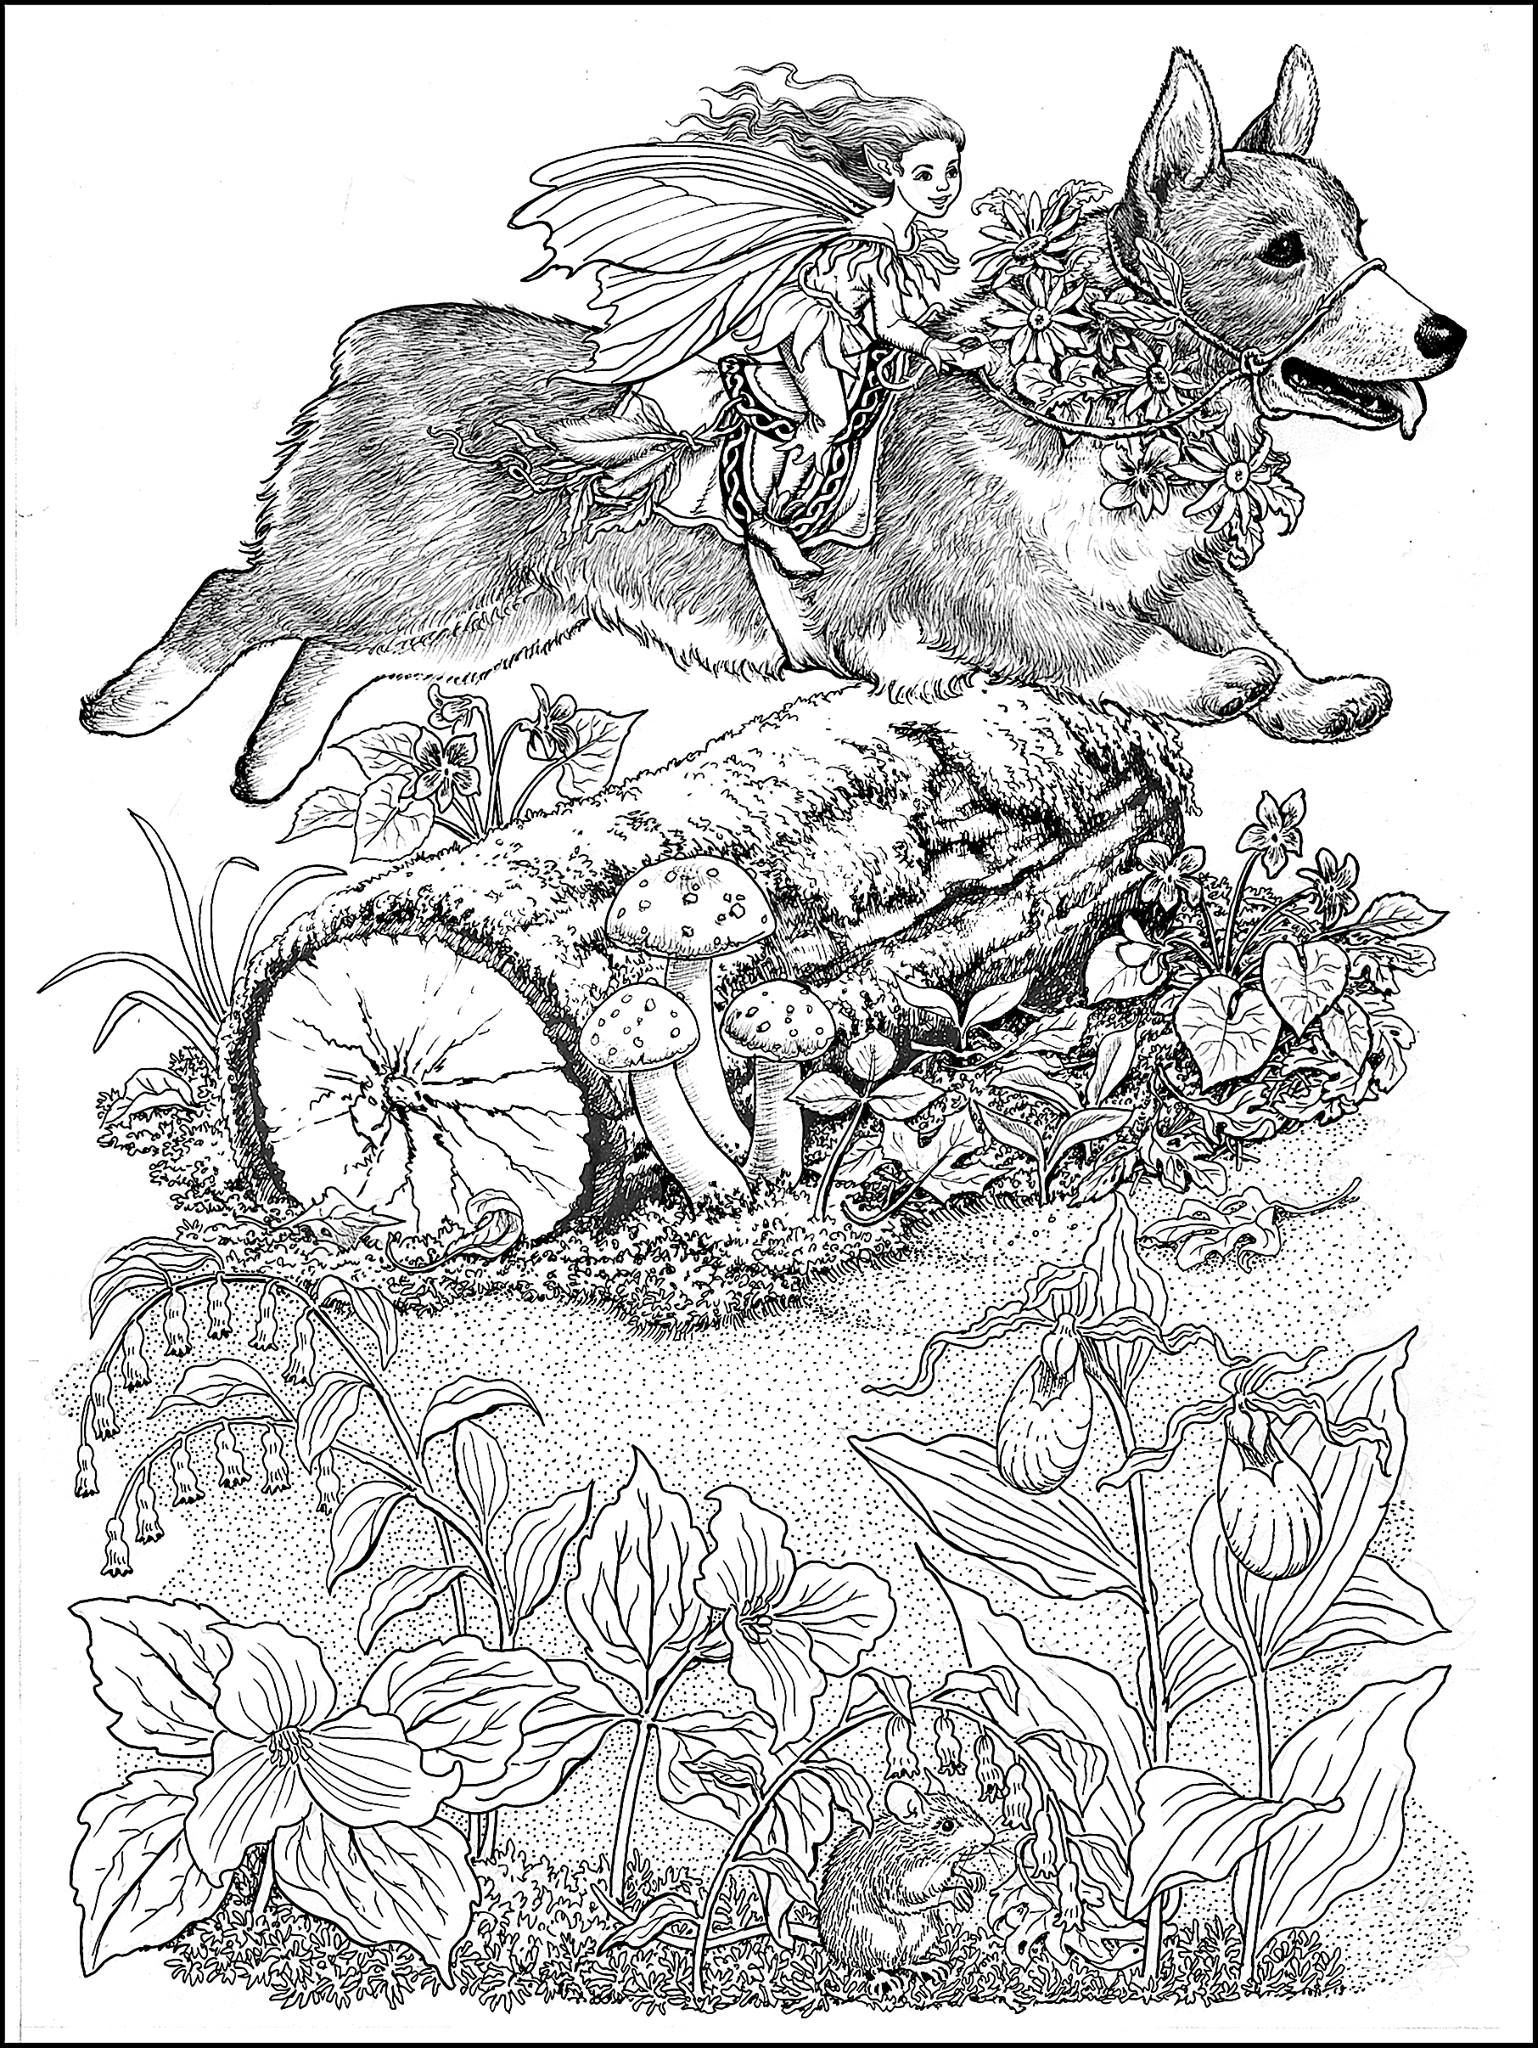 Corgi Fairy Steed from THE WORLD OF FAIRIES Coloring Book ...